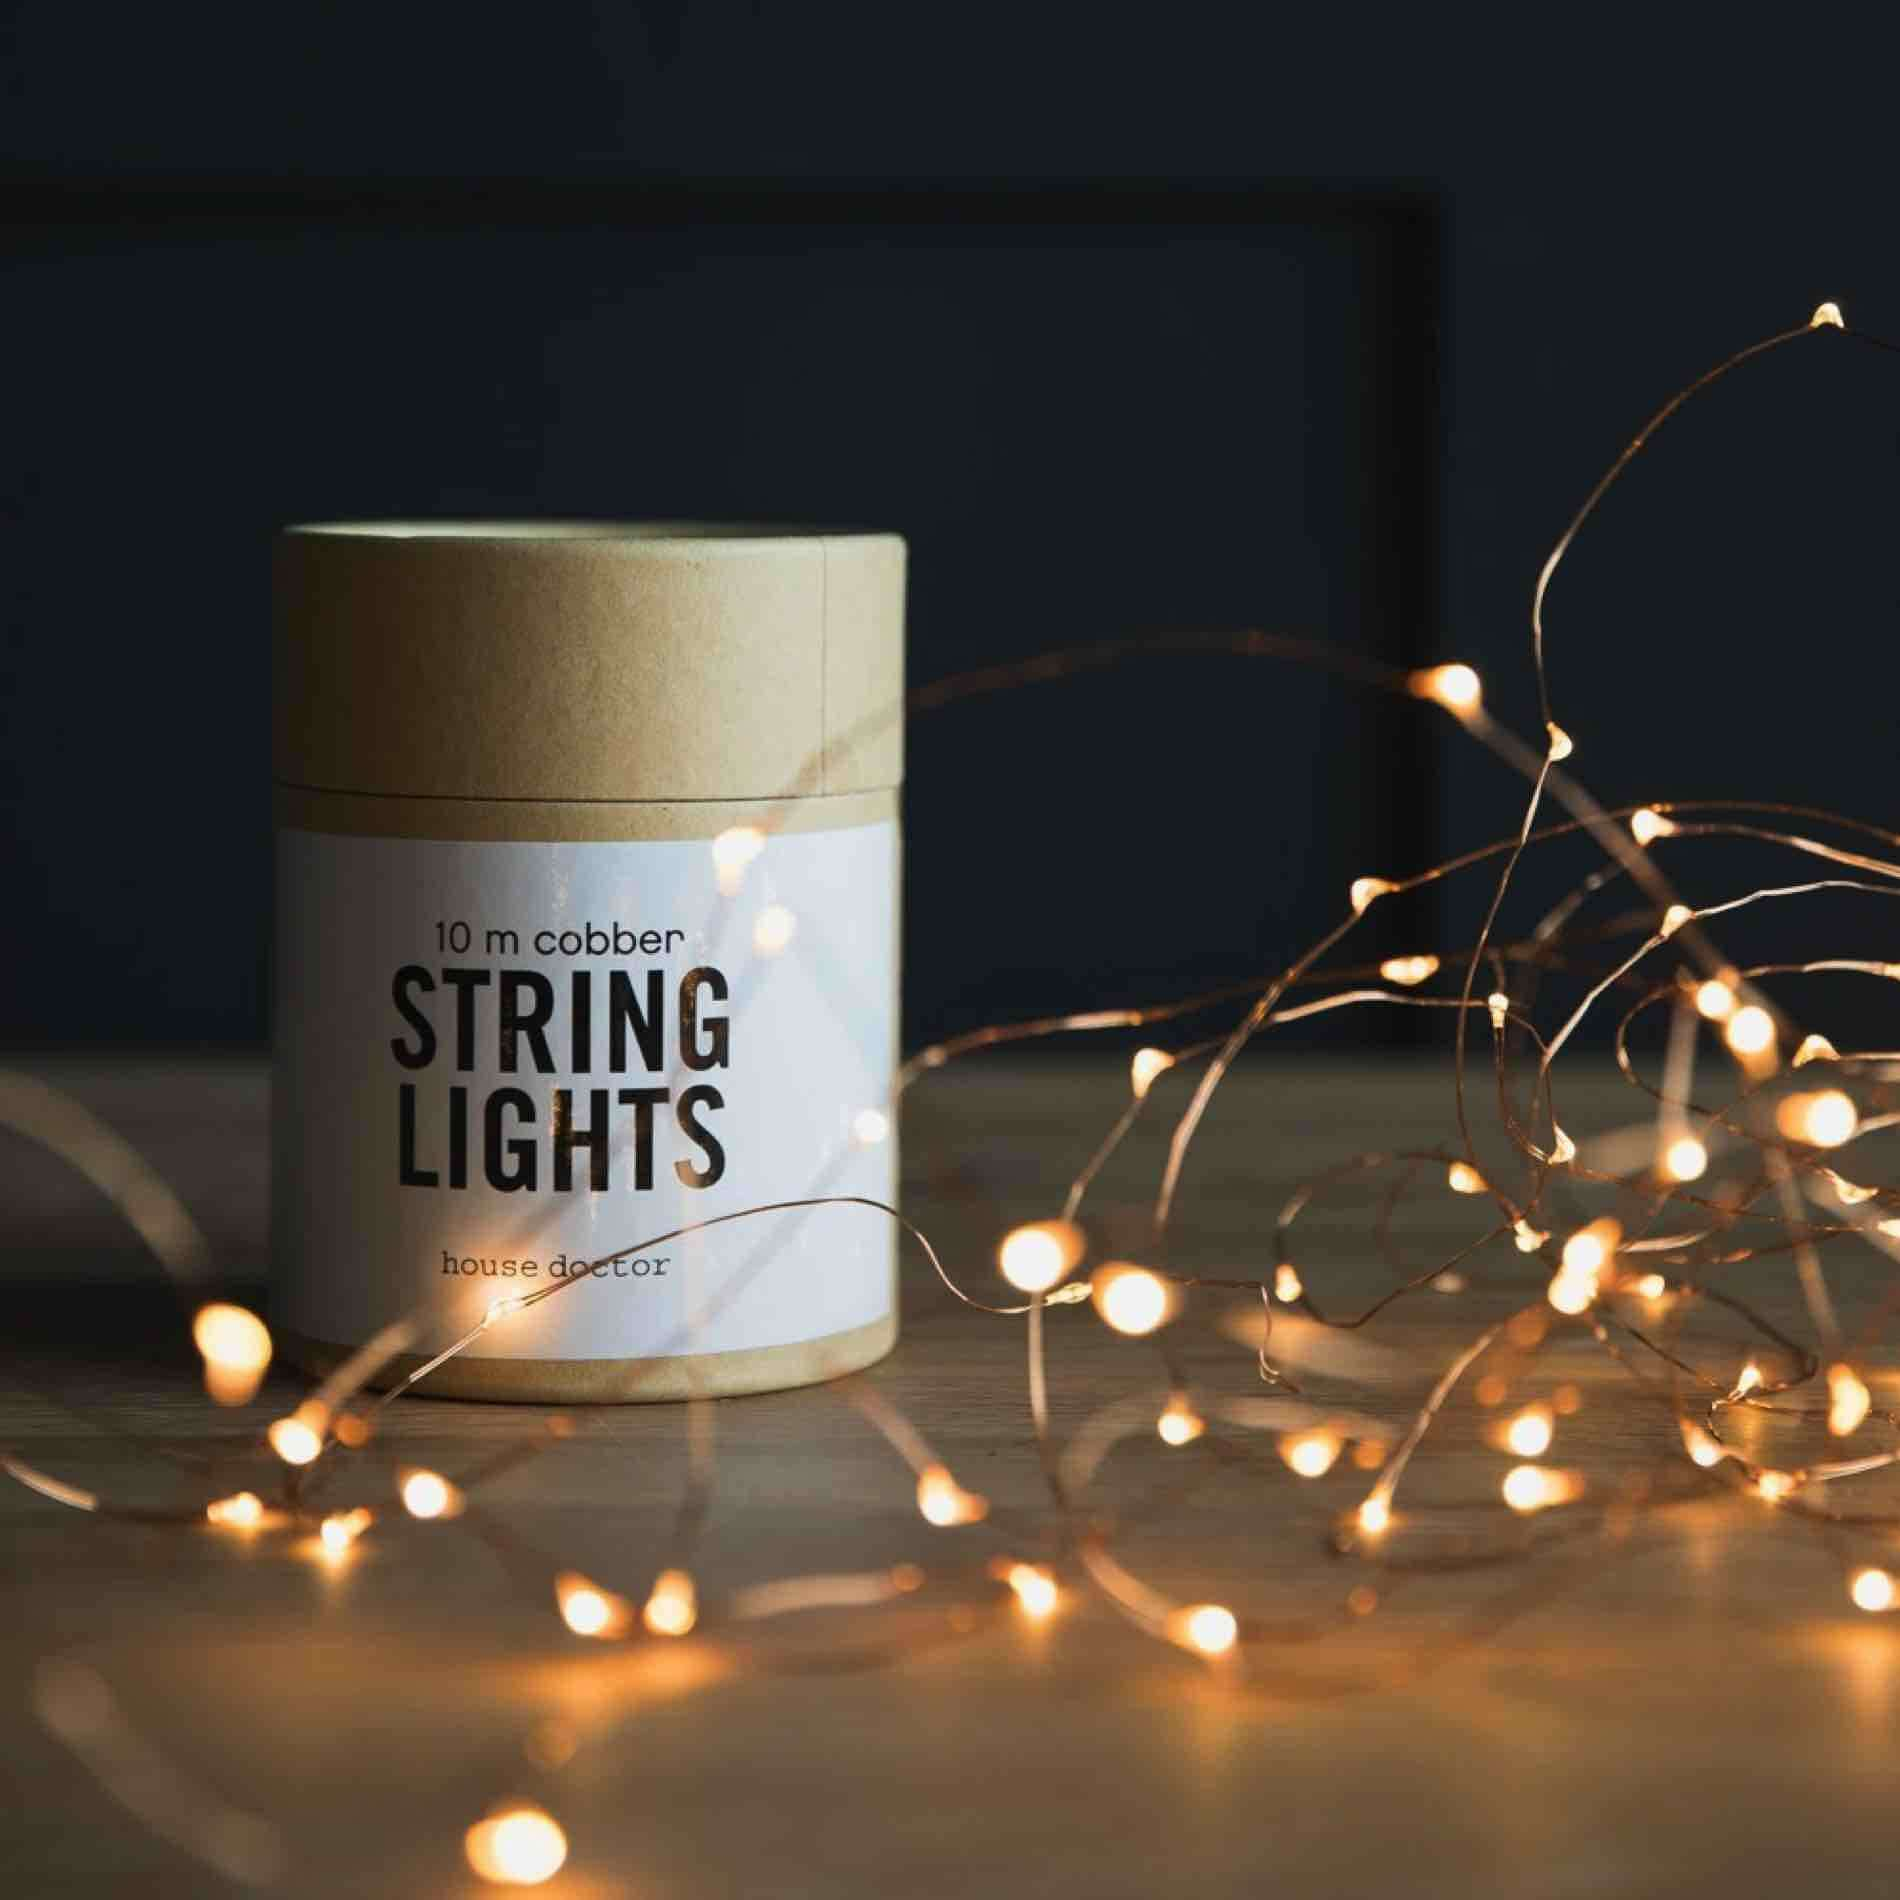 House Doctor String Lights